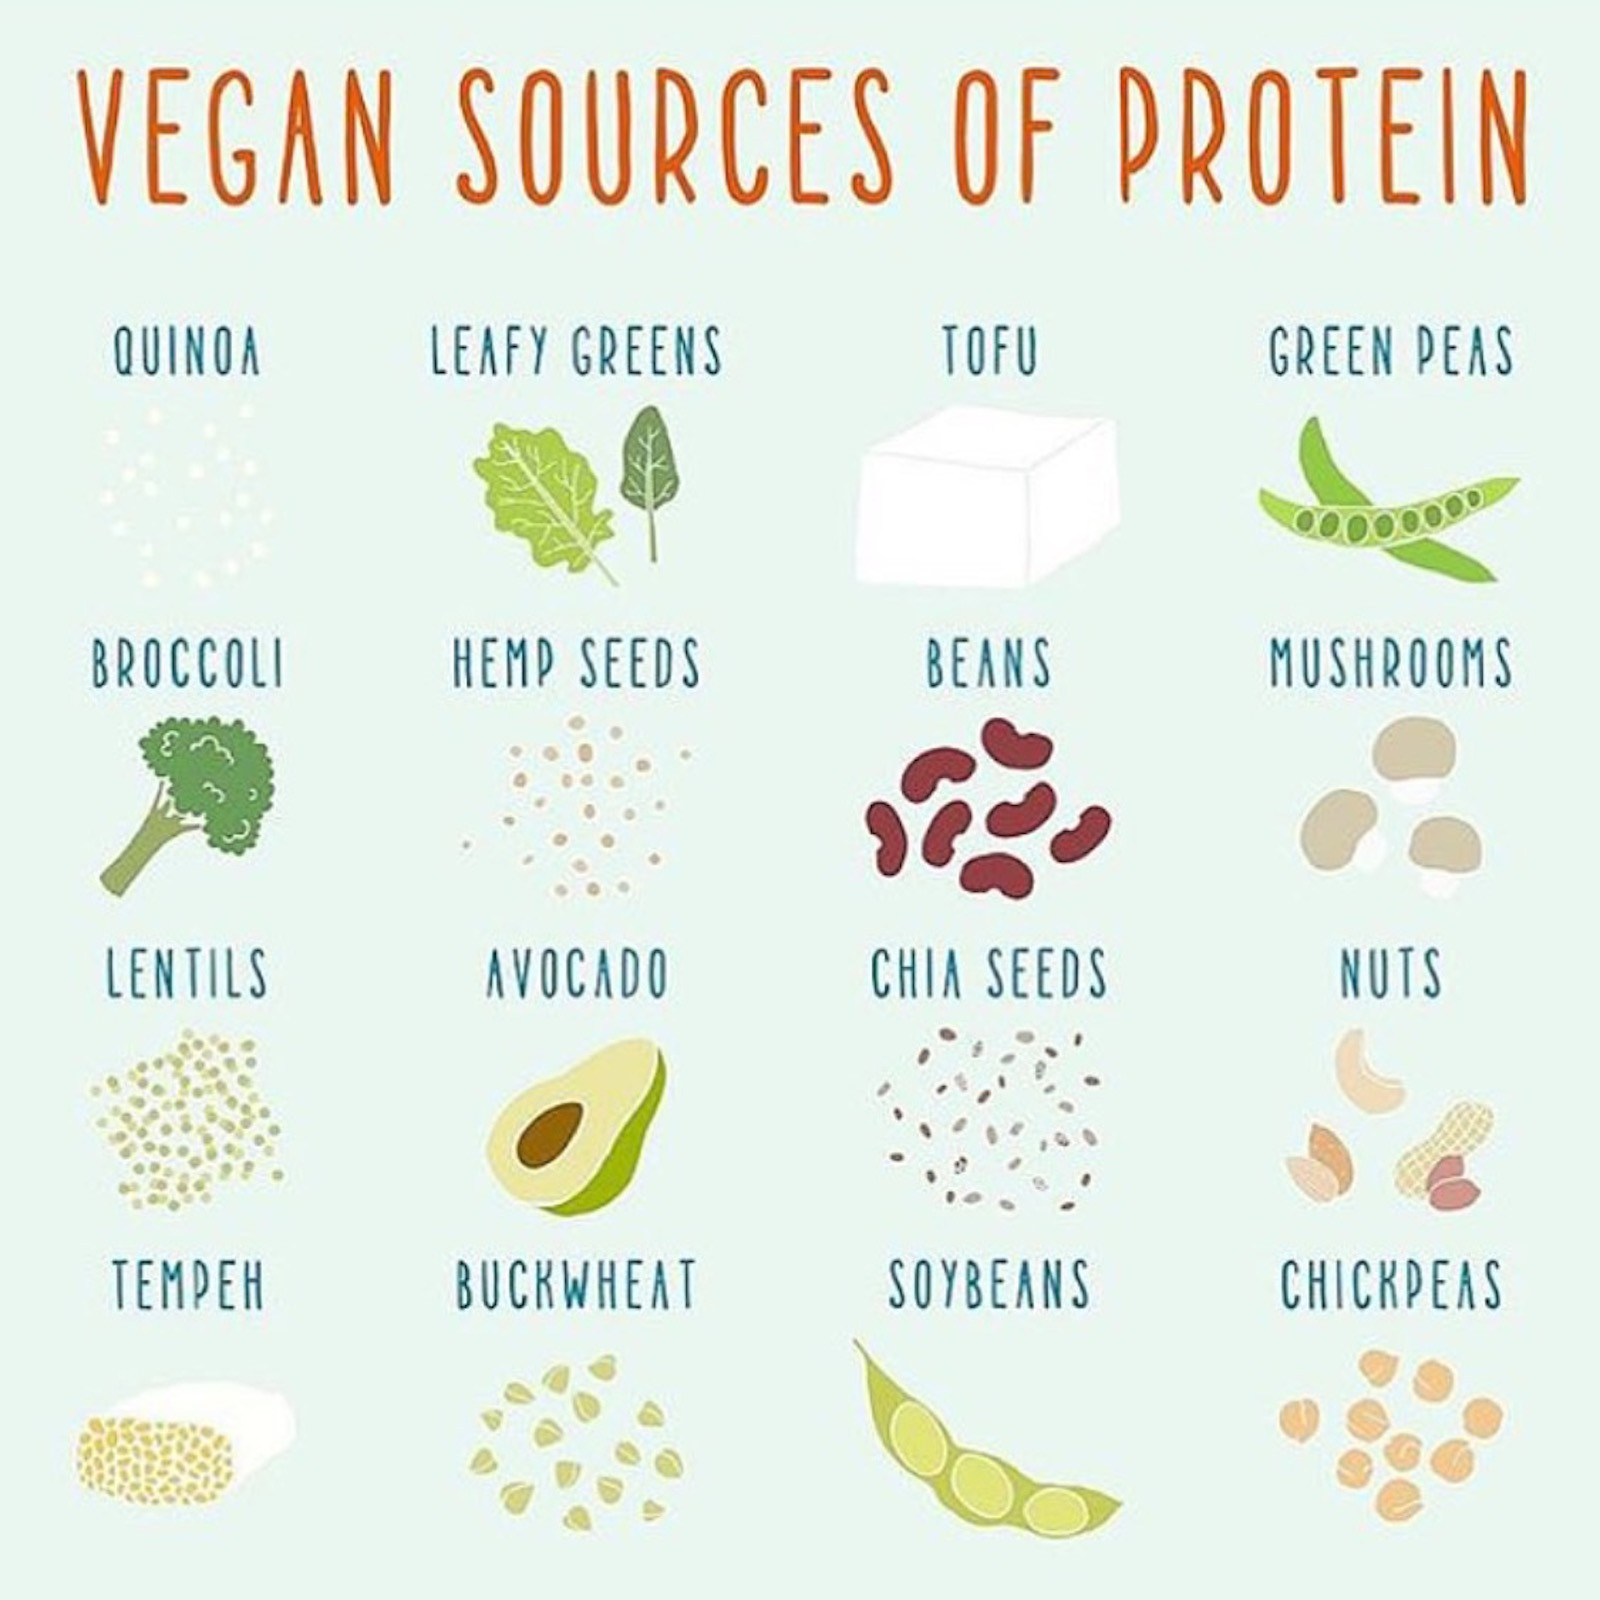 Protein on a low FODMAP Vegan Diet